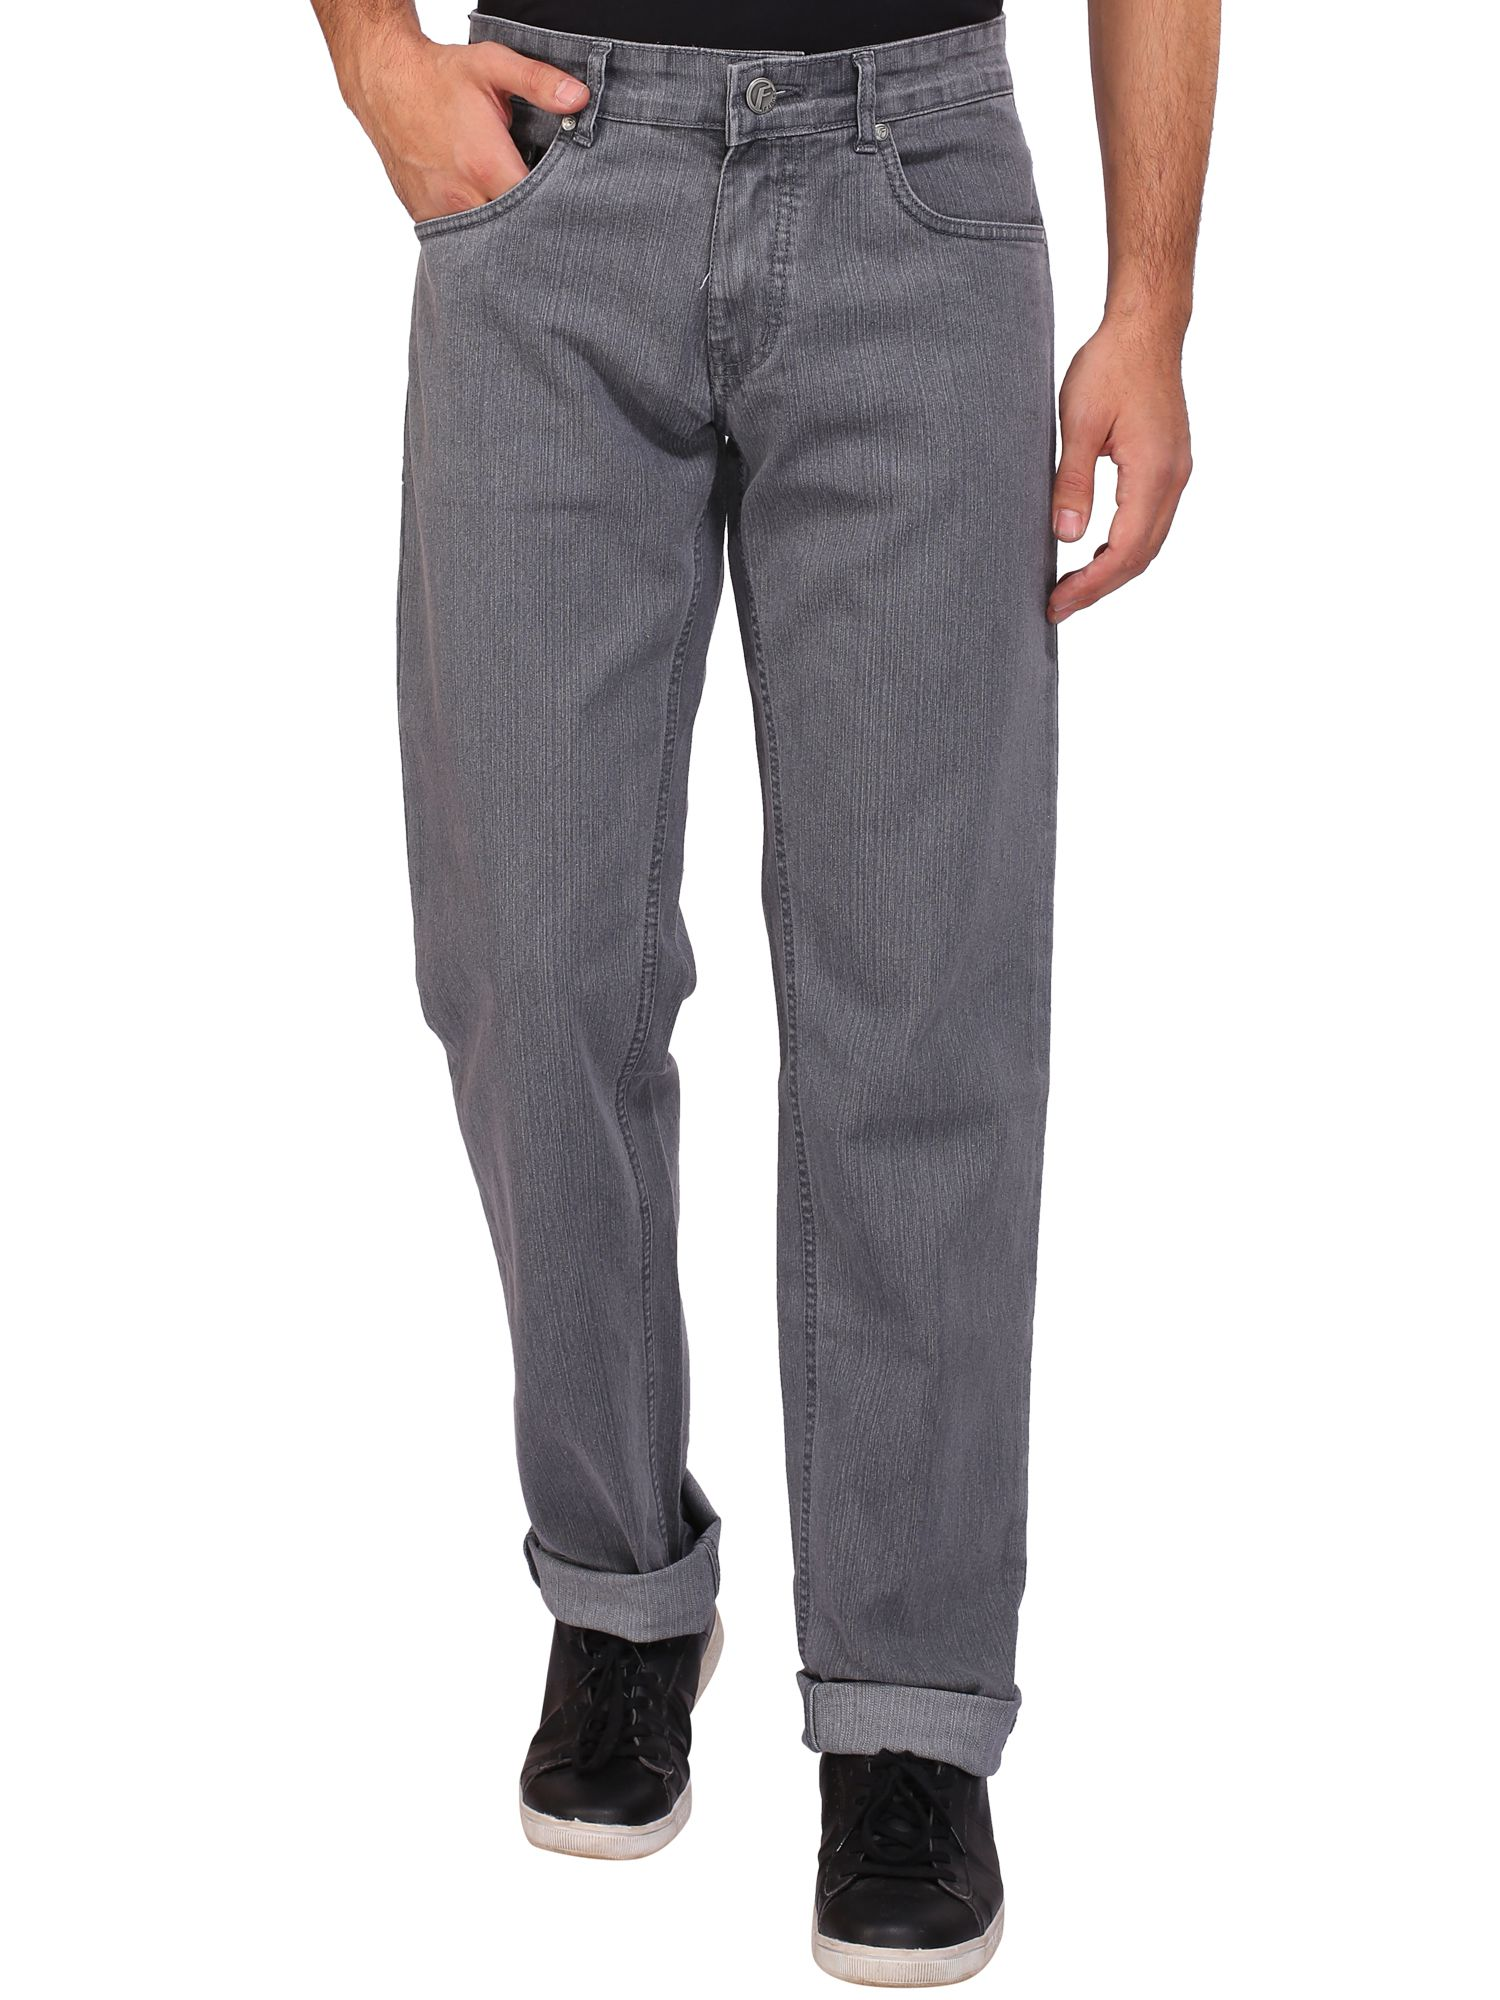 Flags Grey Regular Fit Jeans